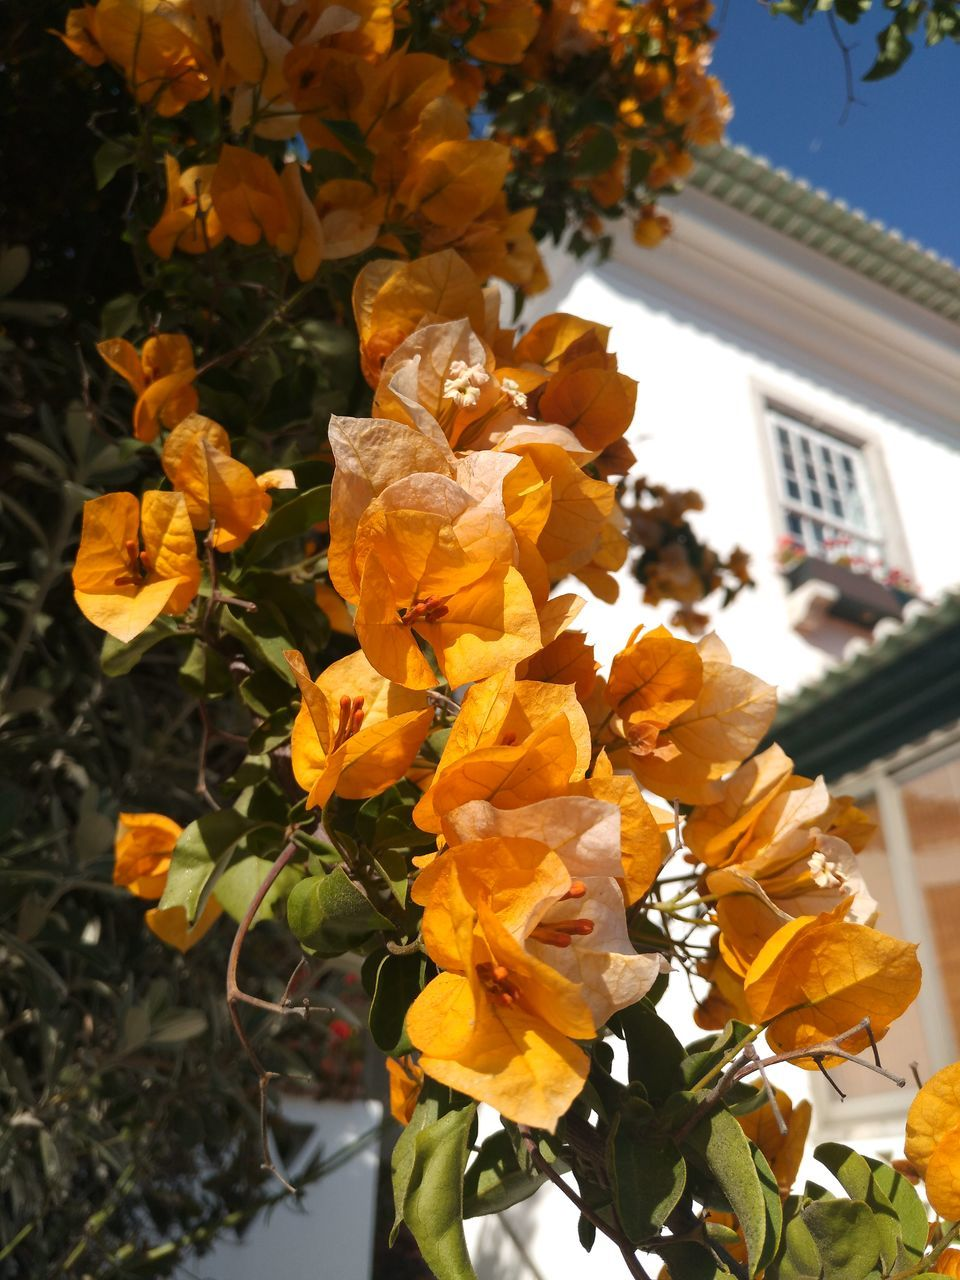 flower, building exterior, fragility, yellow, petal, architecture, plant, outdoors, no people, growth, nature, day, built structure, beauty in nature, blossom, freshness, springtime, blooming, flower head, low angle view, tree, close-up, sky